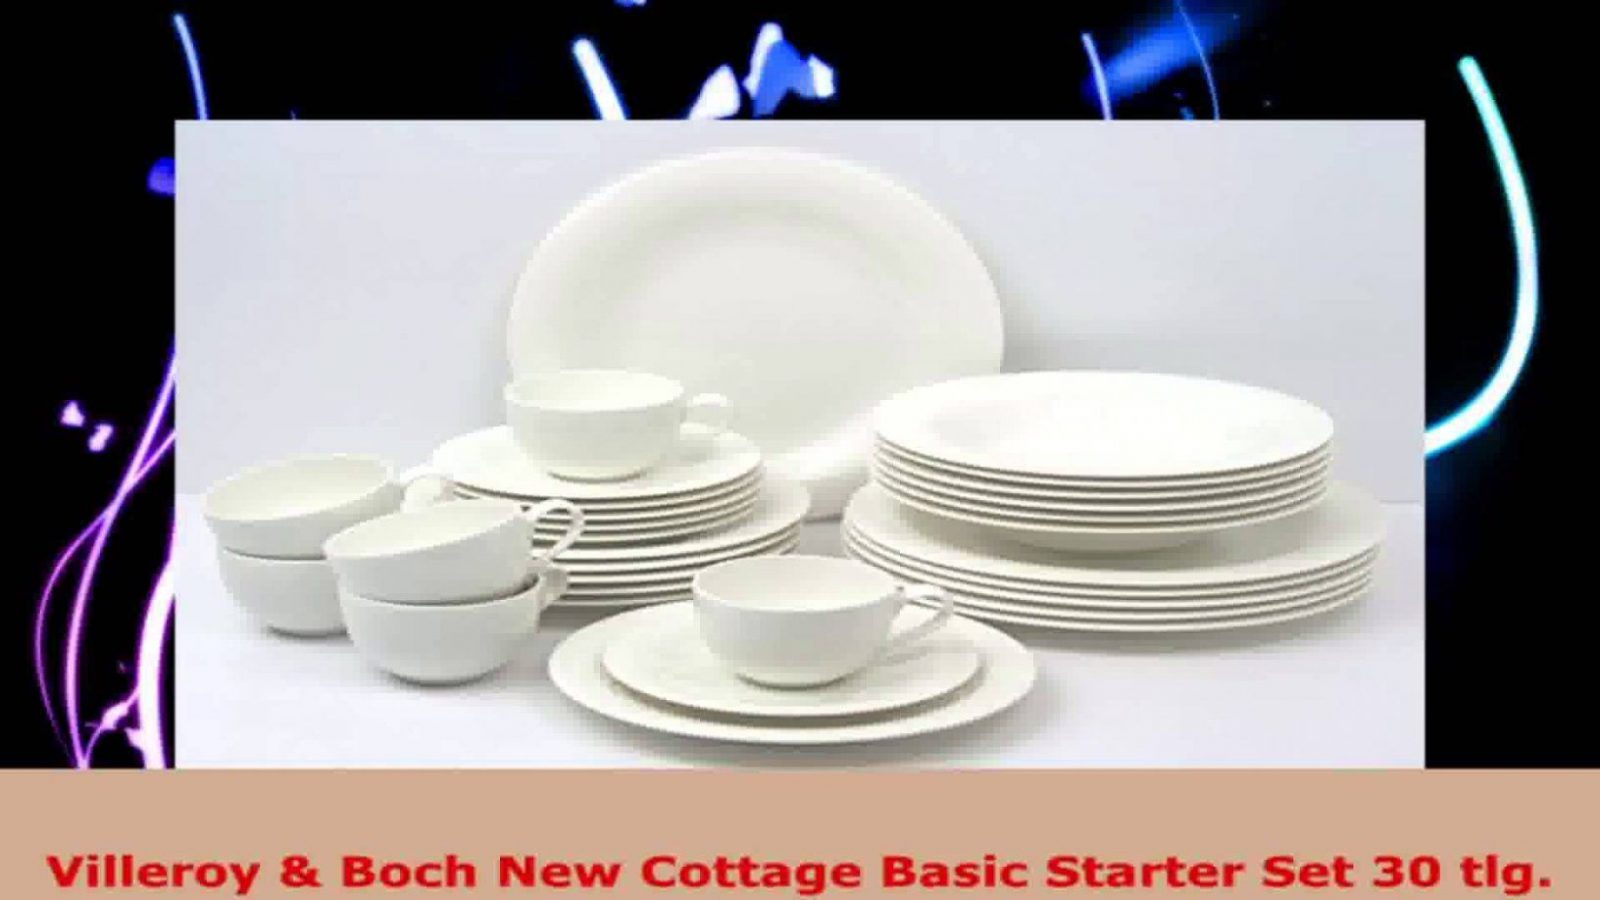 Villeroy Und Boch Geschirr Set Villeroy U Boch New Cottage Basic von Villeroy Boch Vivo Geschirr Photo